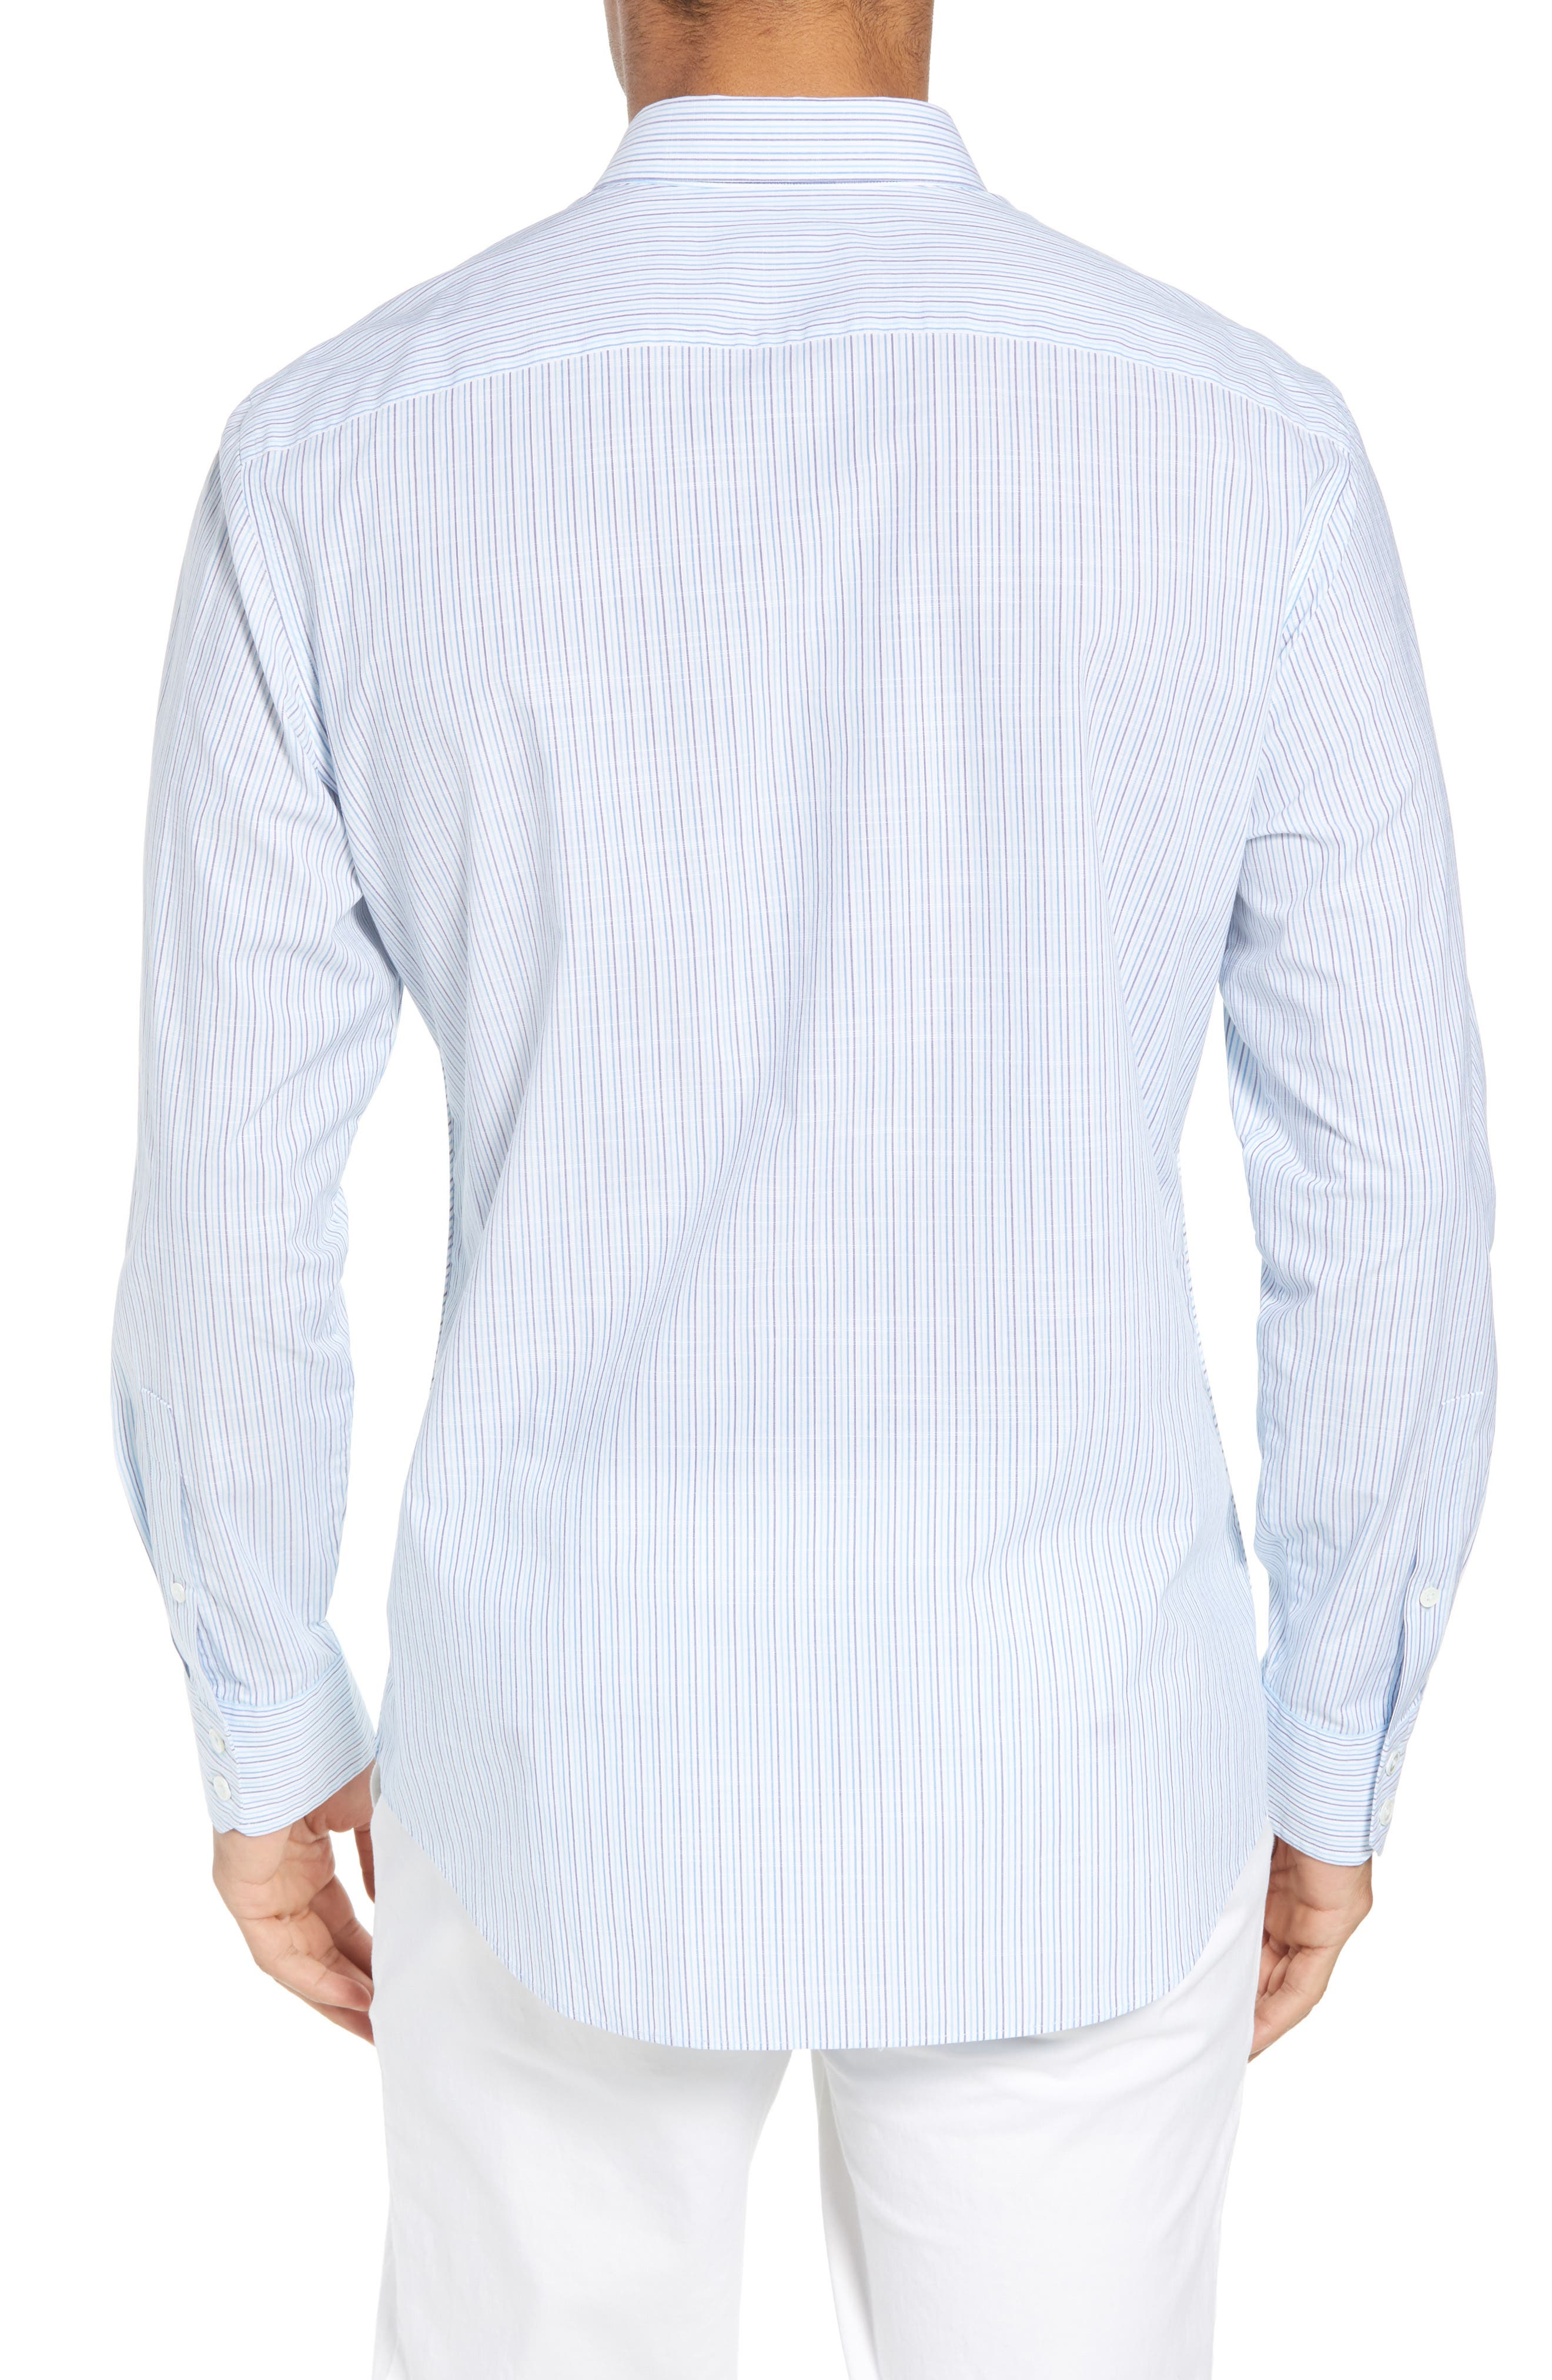 Skeeter Stripe Sport Shirt,                             Alternate thumbnail 3, color,                             Aqua